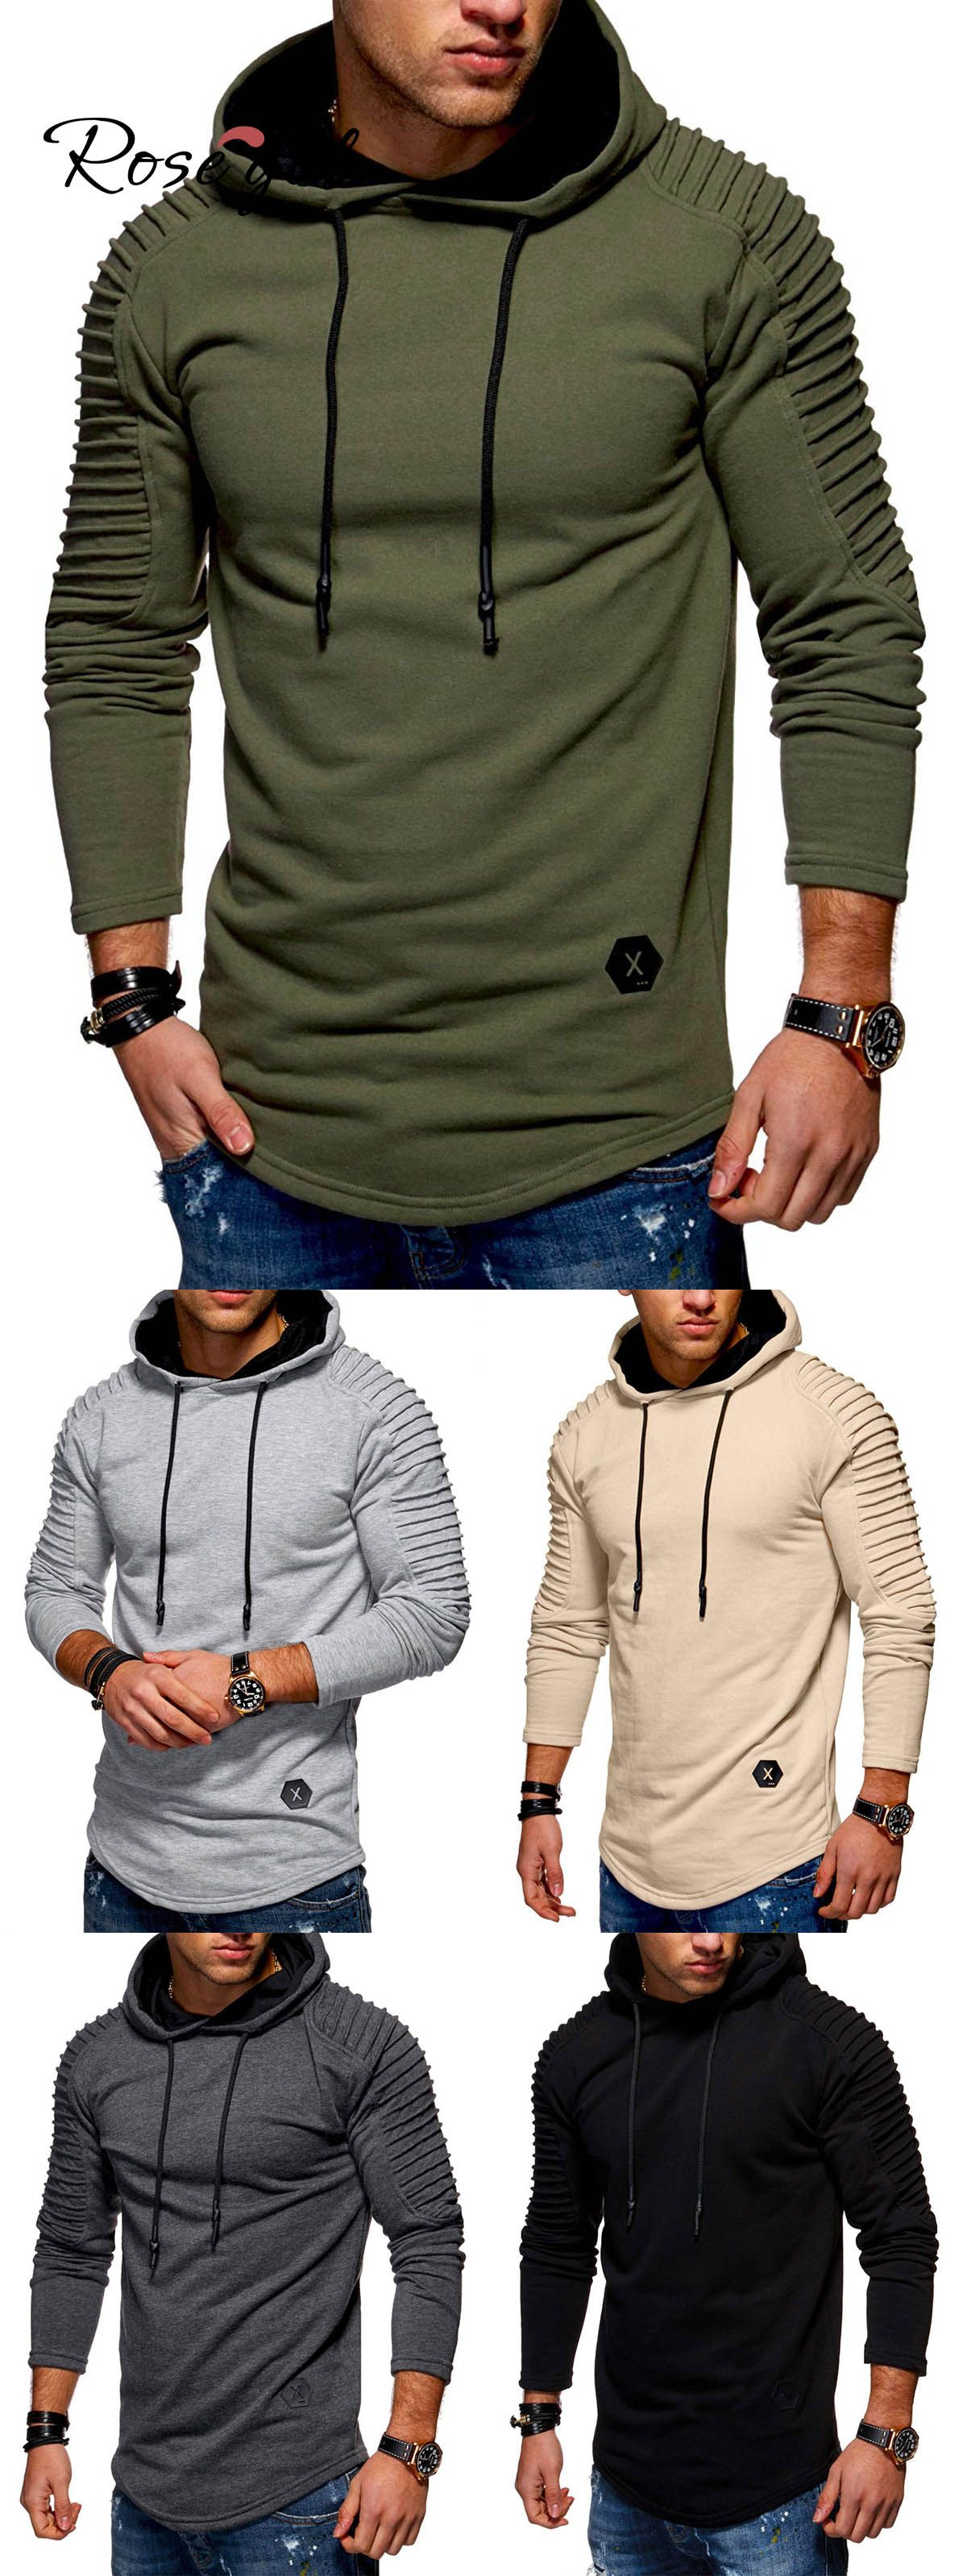 Free shipping over  49, up to 70% off,  21.03, Solid Pleated Sleeve Hem  Curved Long Fleece Hoodie   Rosegal,rosegal.com,Rosegal for men,mens  sweatshirts ... 0d73db9c507f